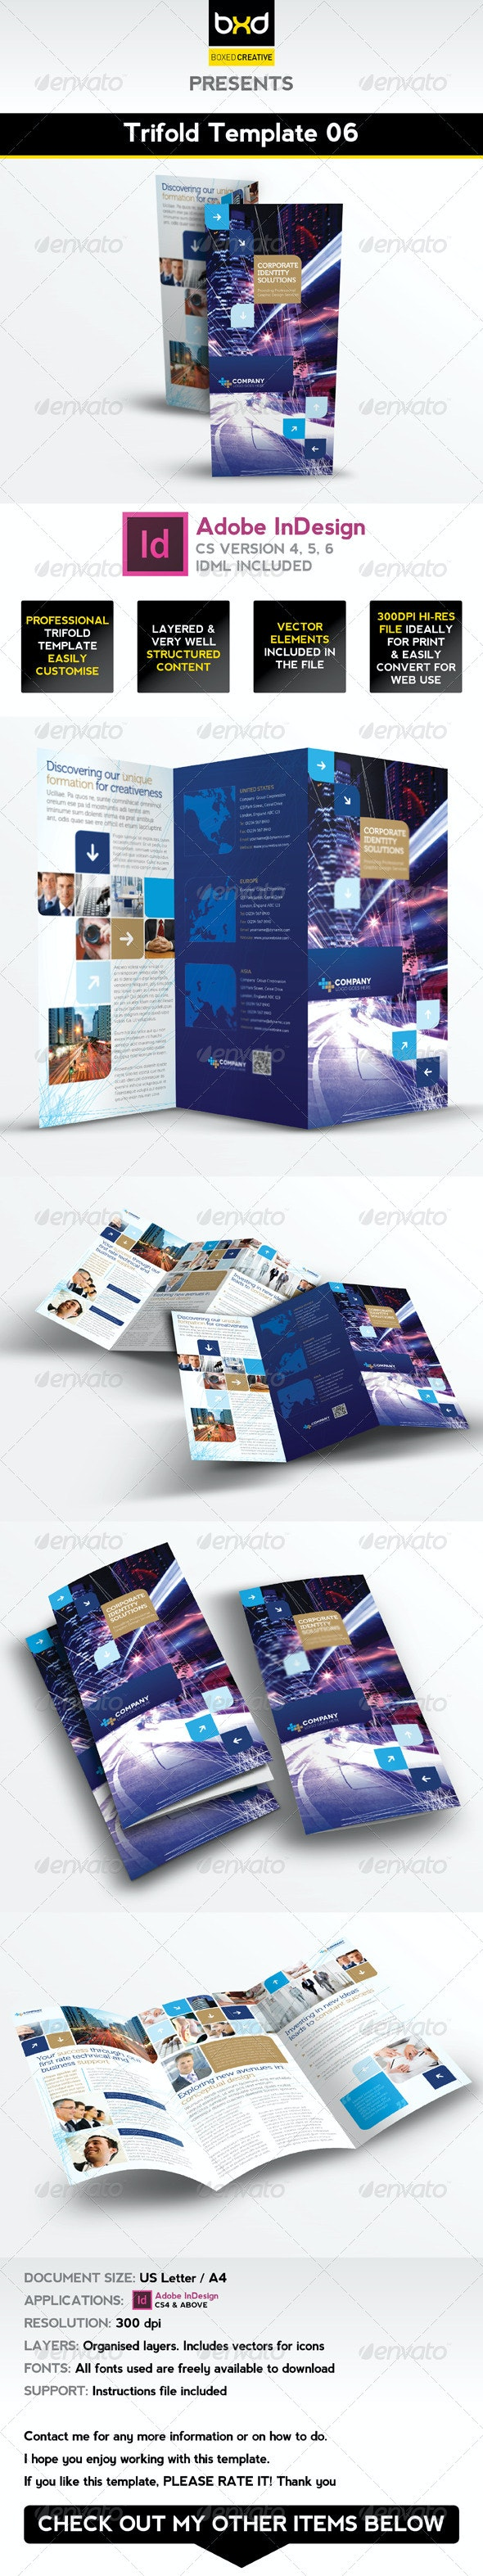 Trifold Brochure Template 06 - InDesign Layout - Corporate Brochures